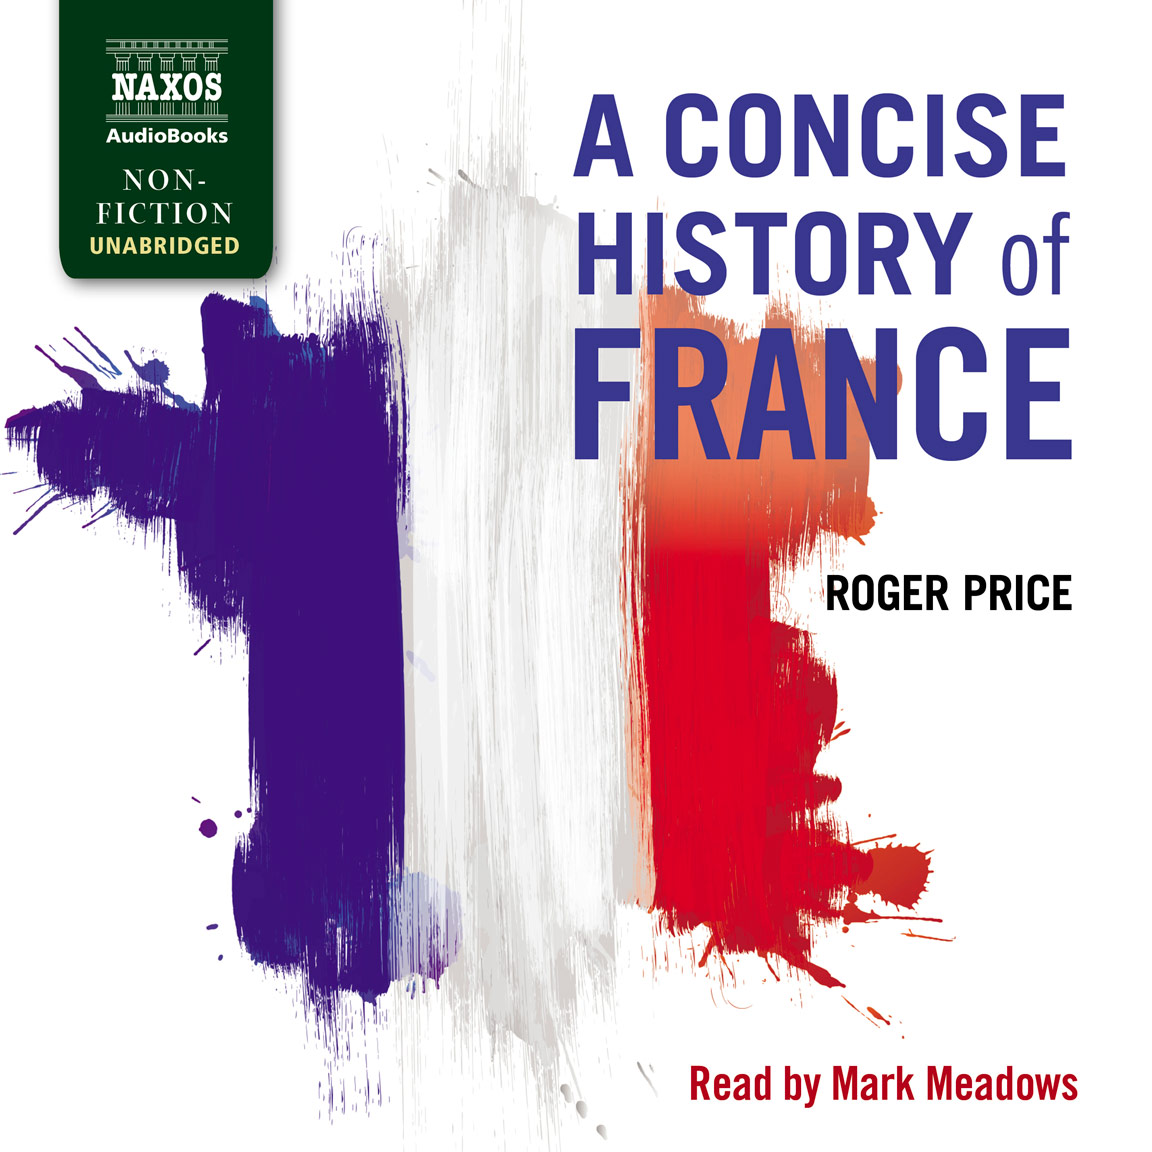 A Concise History of France (unabridged)